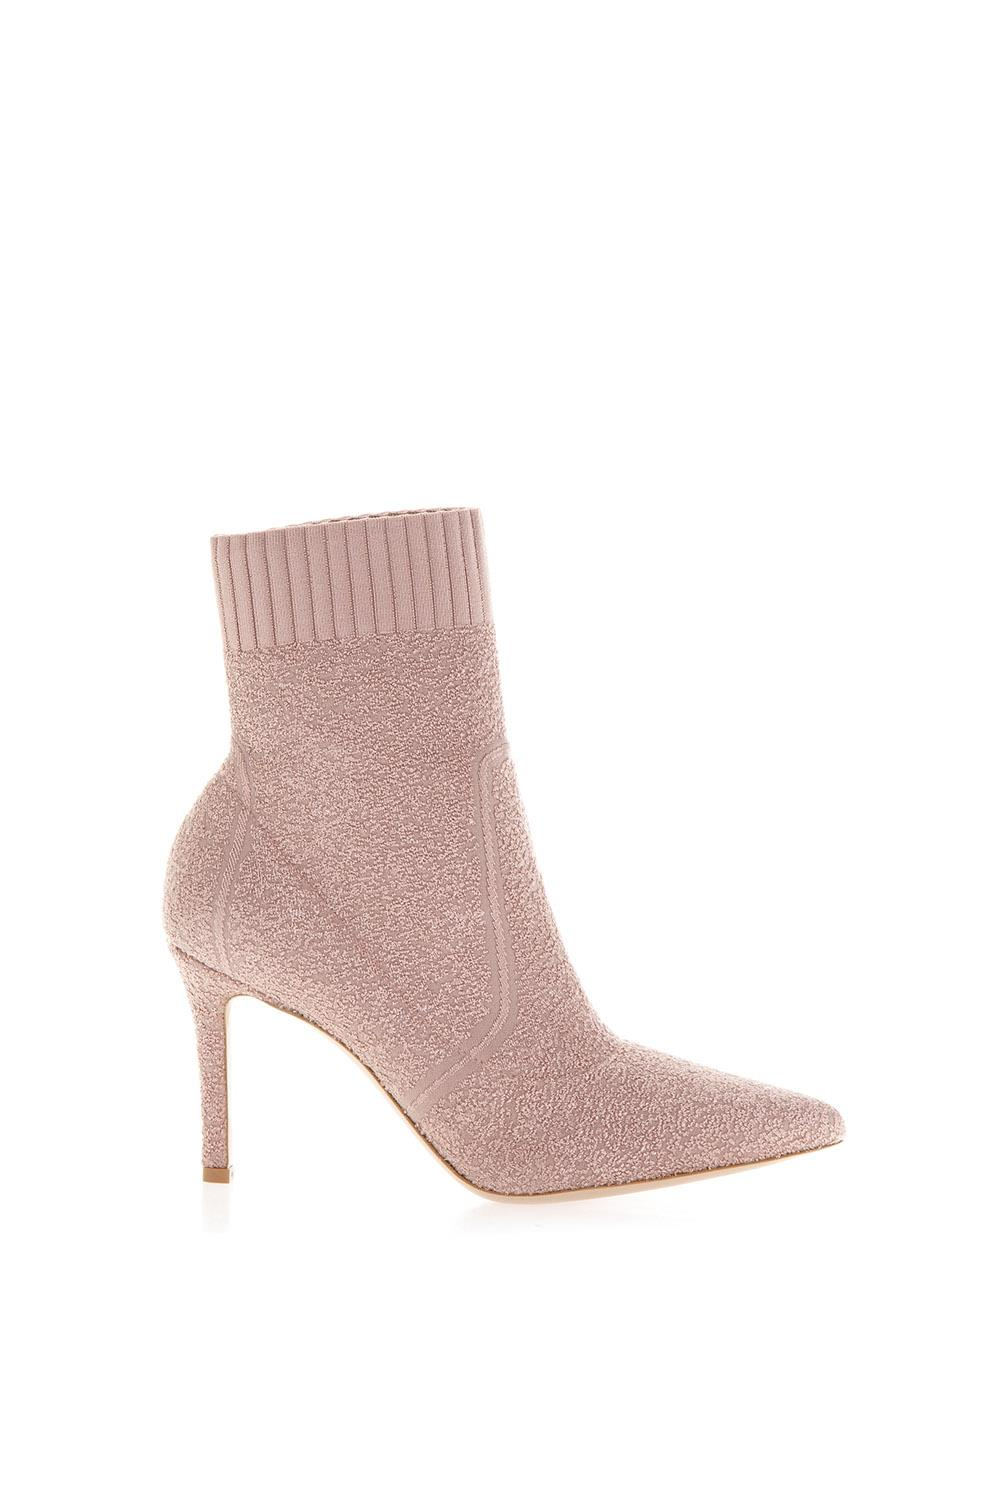 b357af94c76 FIONA PINK STRETCH KNIT ANKLE BOOTS FW 2018